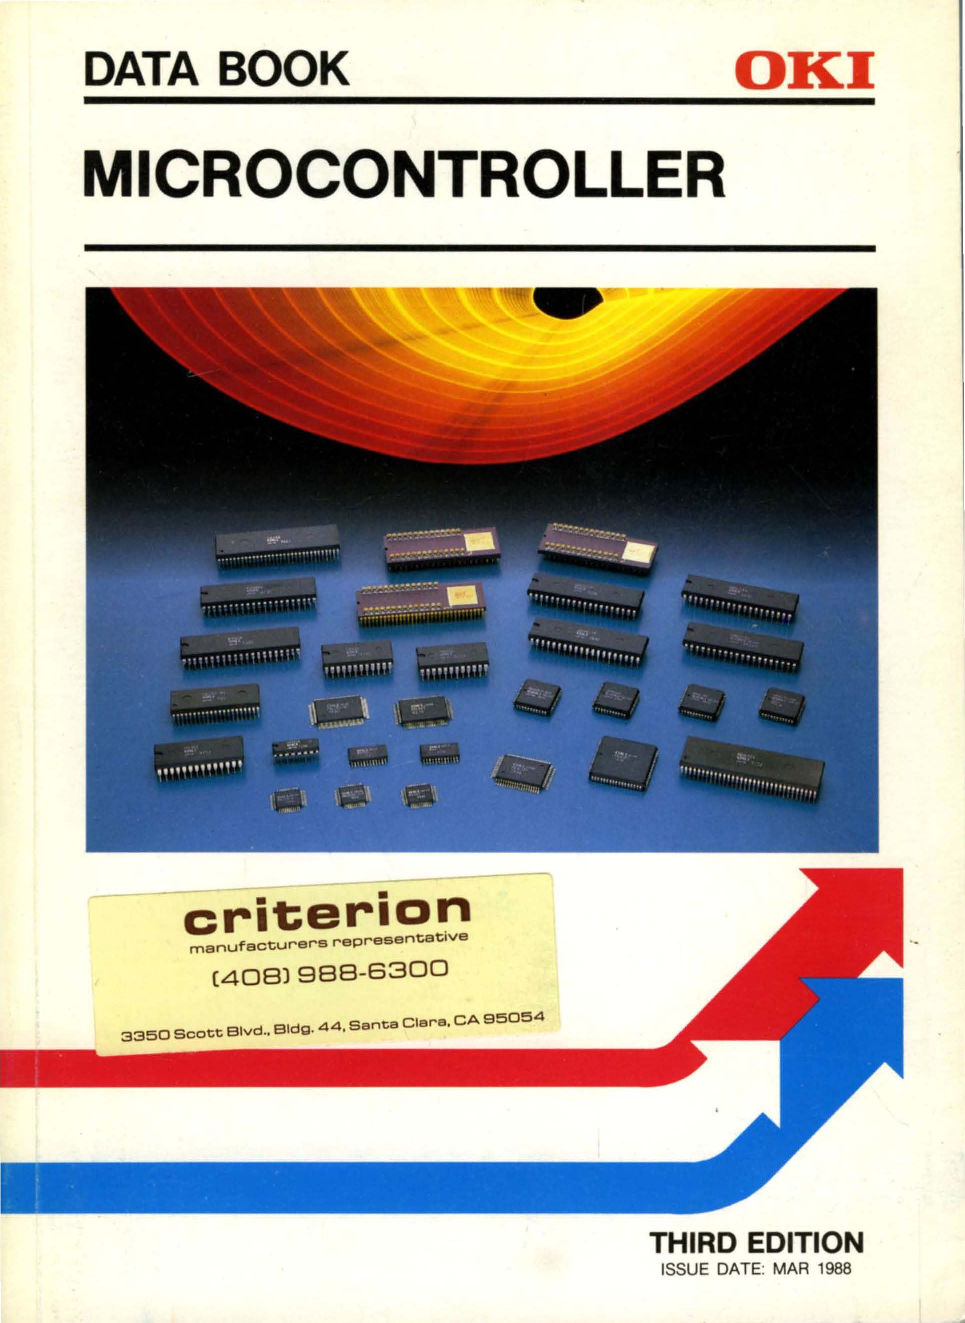 1988_OKI_Microcontroller_Data_Book 1988 OKI Microcontroller Data Book